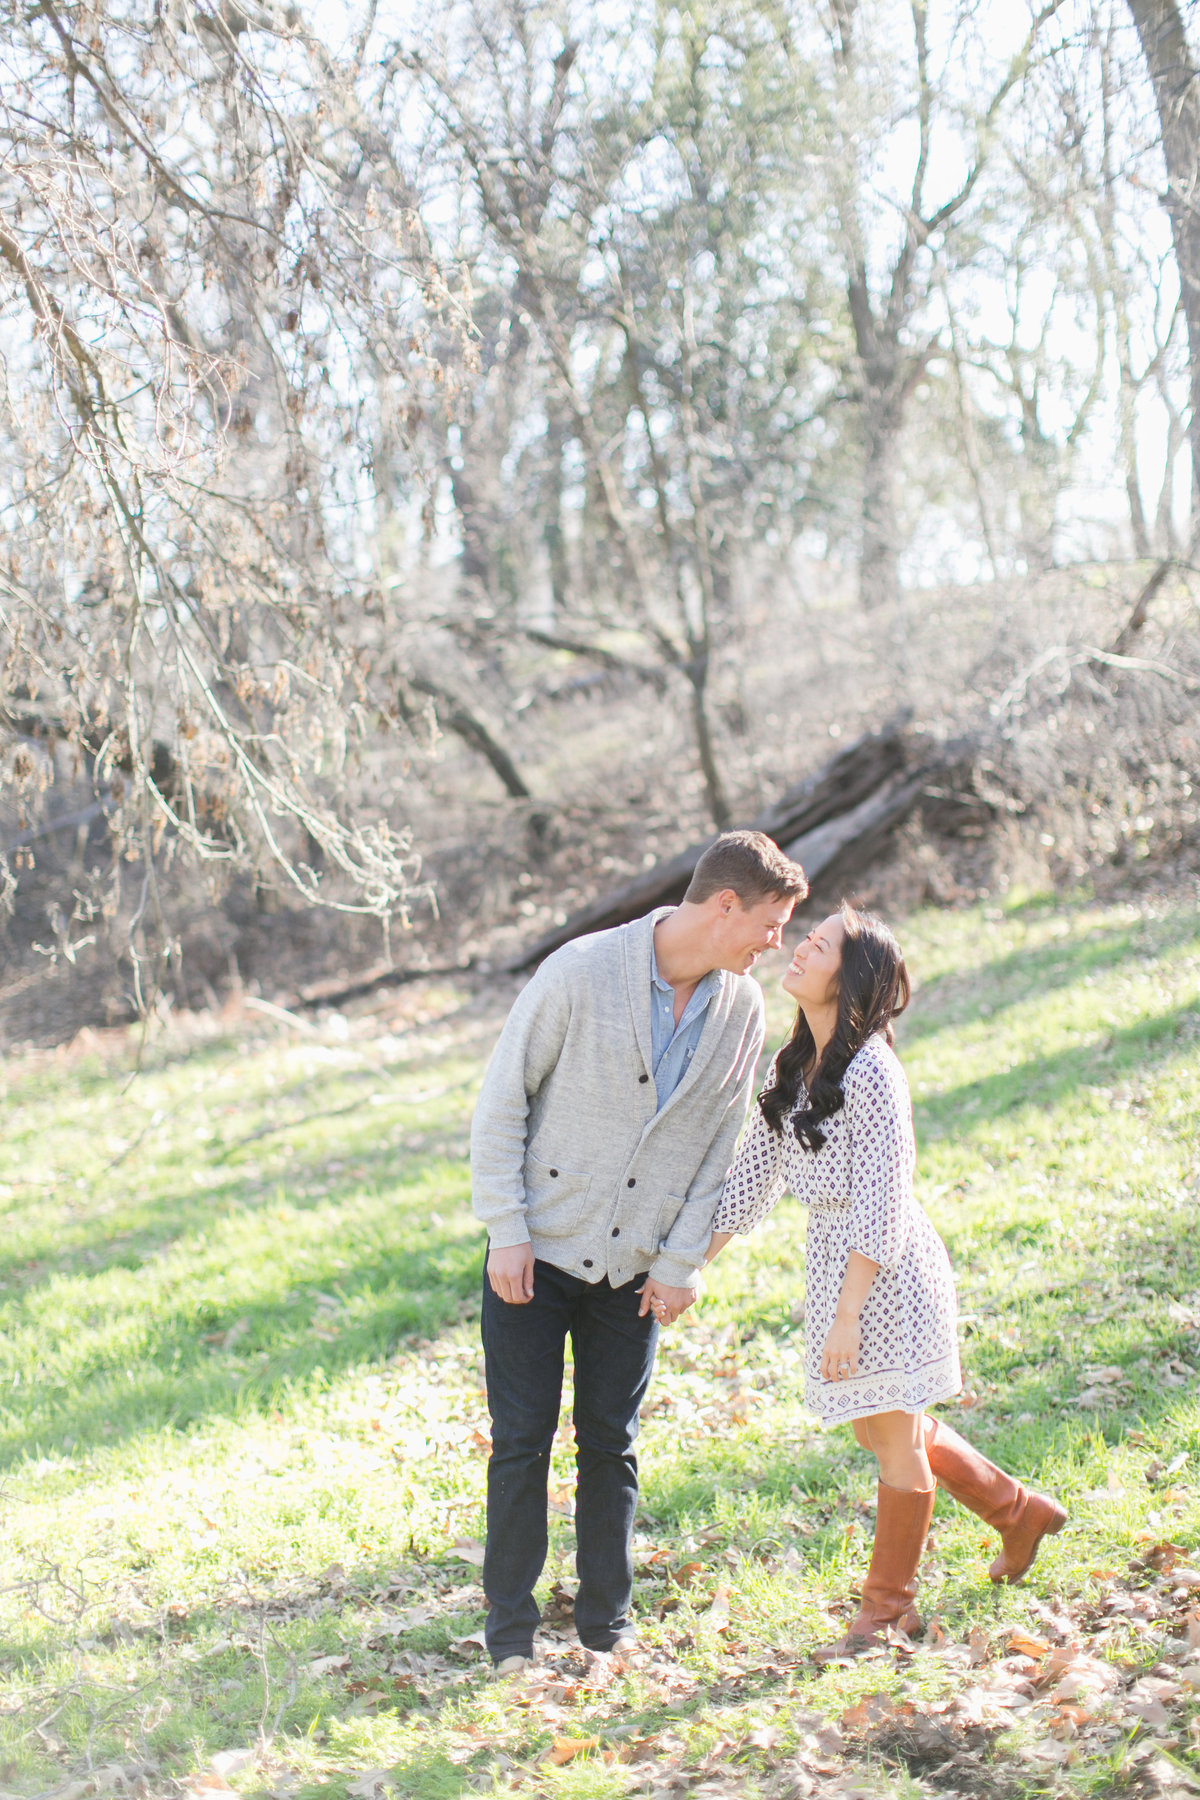 Jenny & Andrew Winter Engagement on Film  {Destination Film Wedding Photographer}  | Katie Schoepflin Photography04